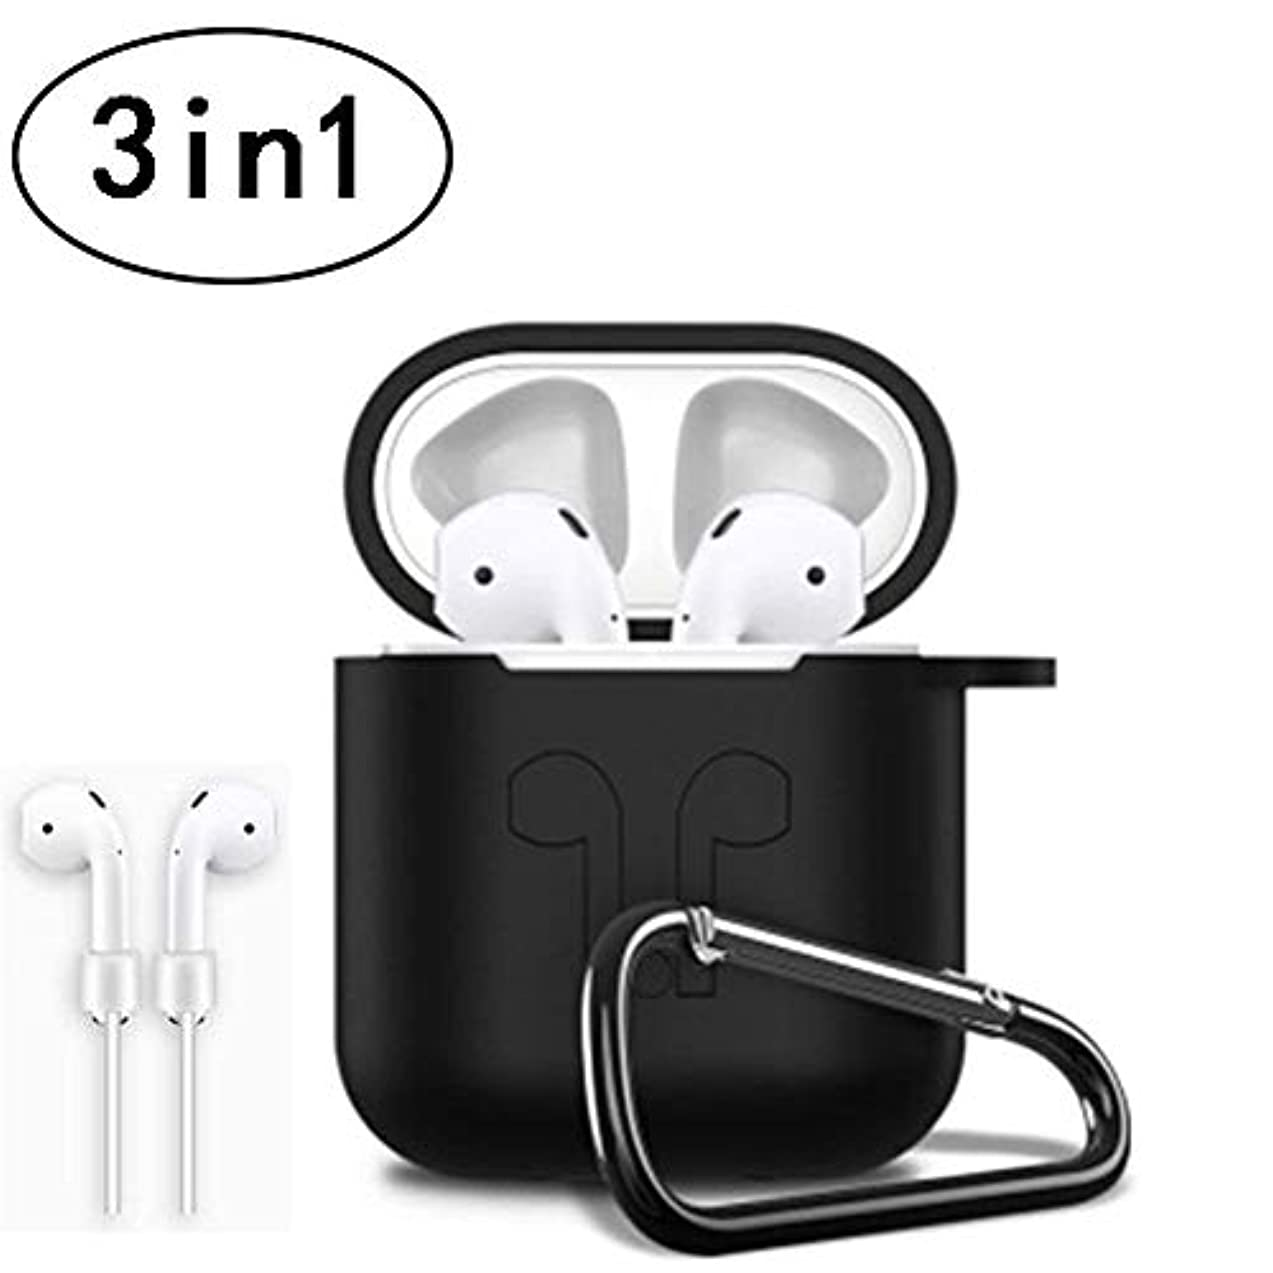 3in1 Non-Slip Silicone Case Cover Earphones Pouch Protective Skin Anti-Lost Wire Eartips Wireless Earphone Case for Apple AirPod-(Black)